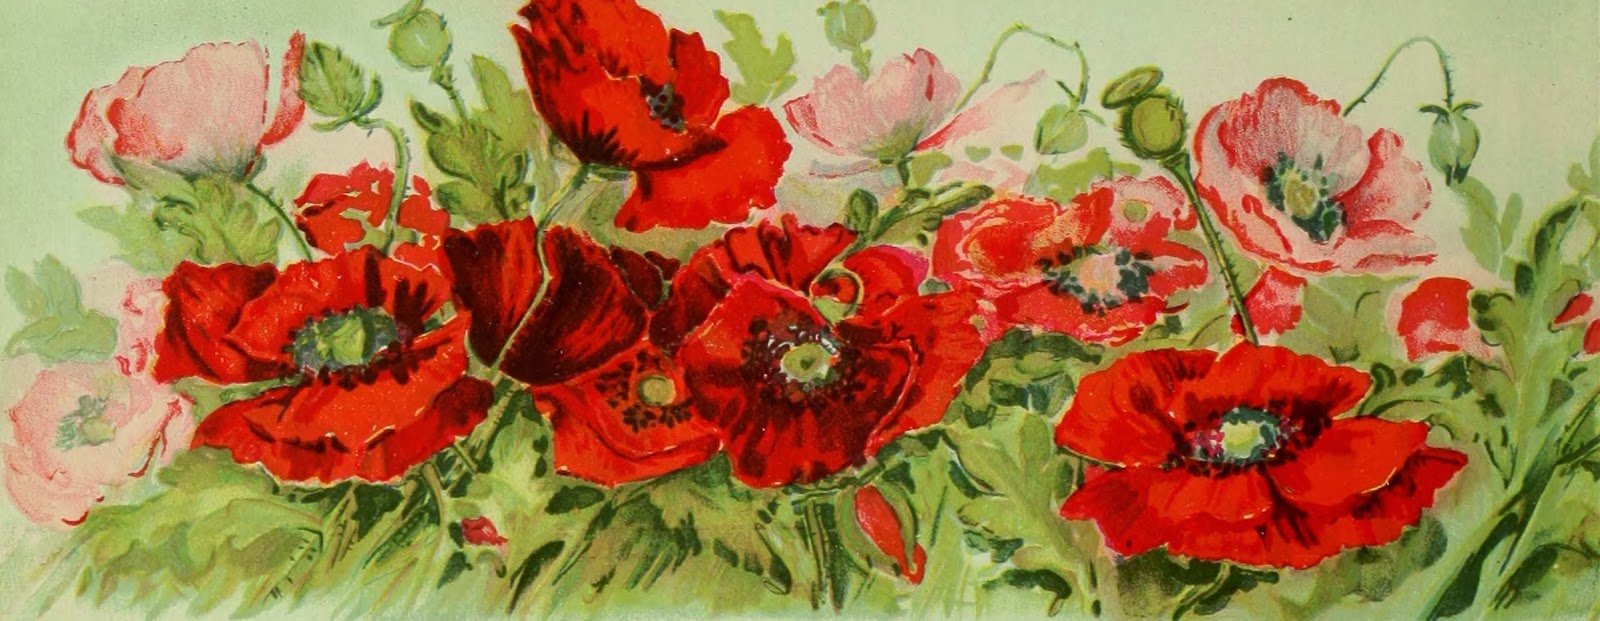 FREE Public Domain Poppy pictures